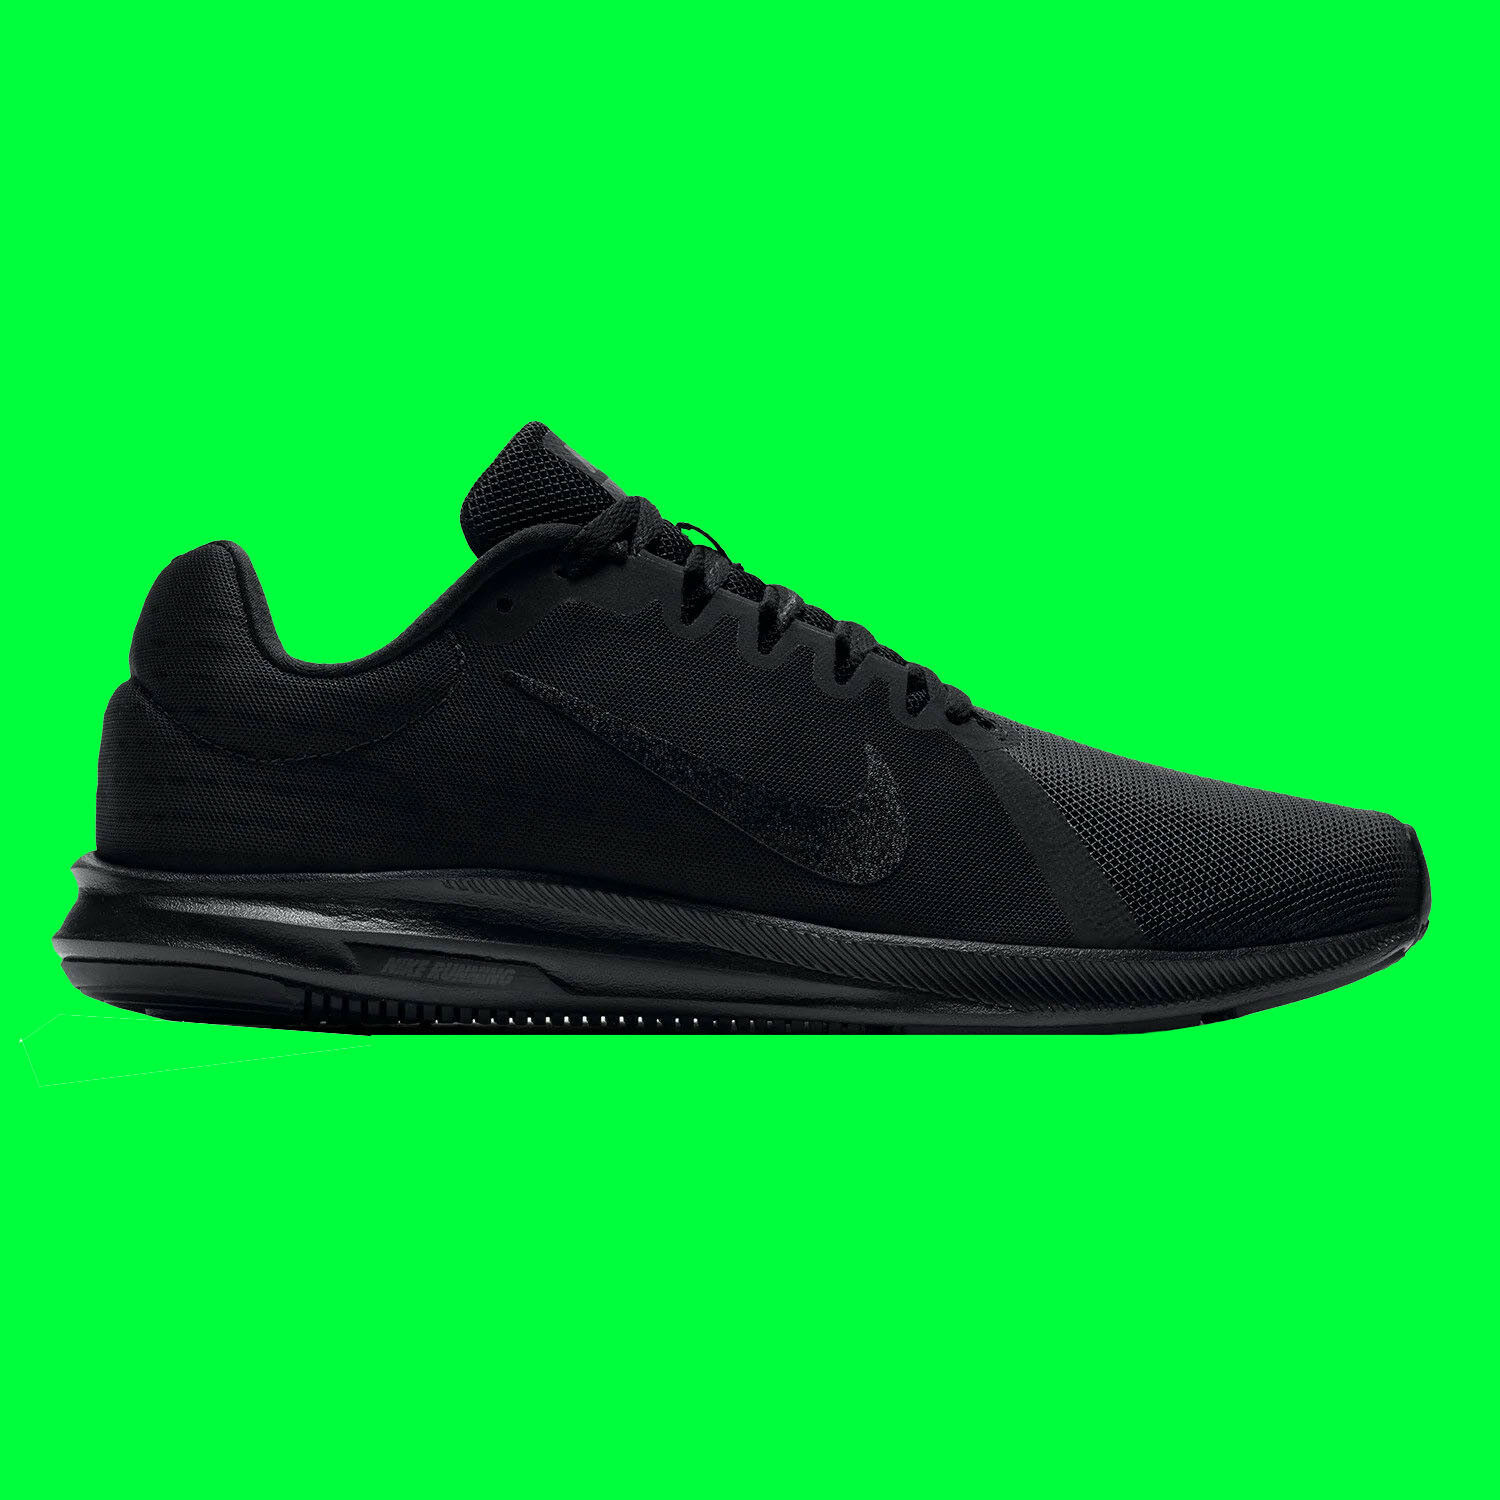 NEW - Nike Downshifter 8 Men's Running shoes - Size 10 - Wide 4E - Black Black